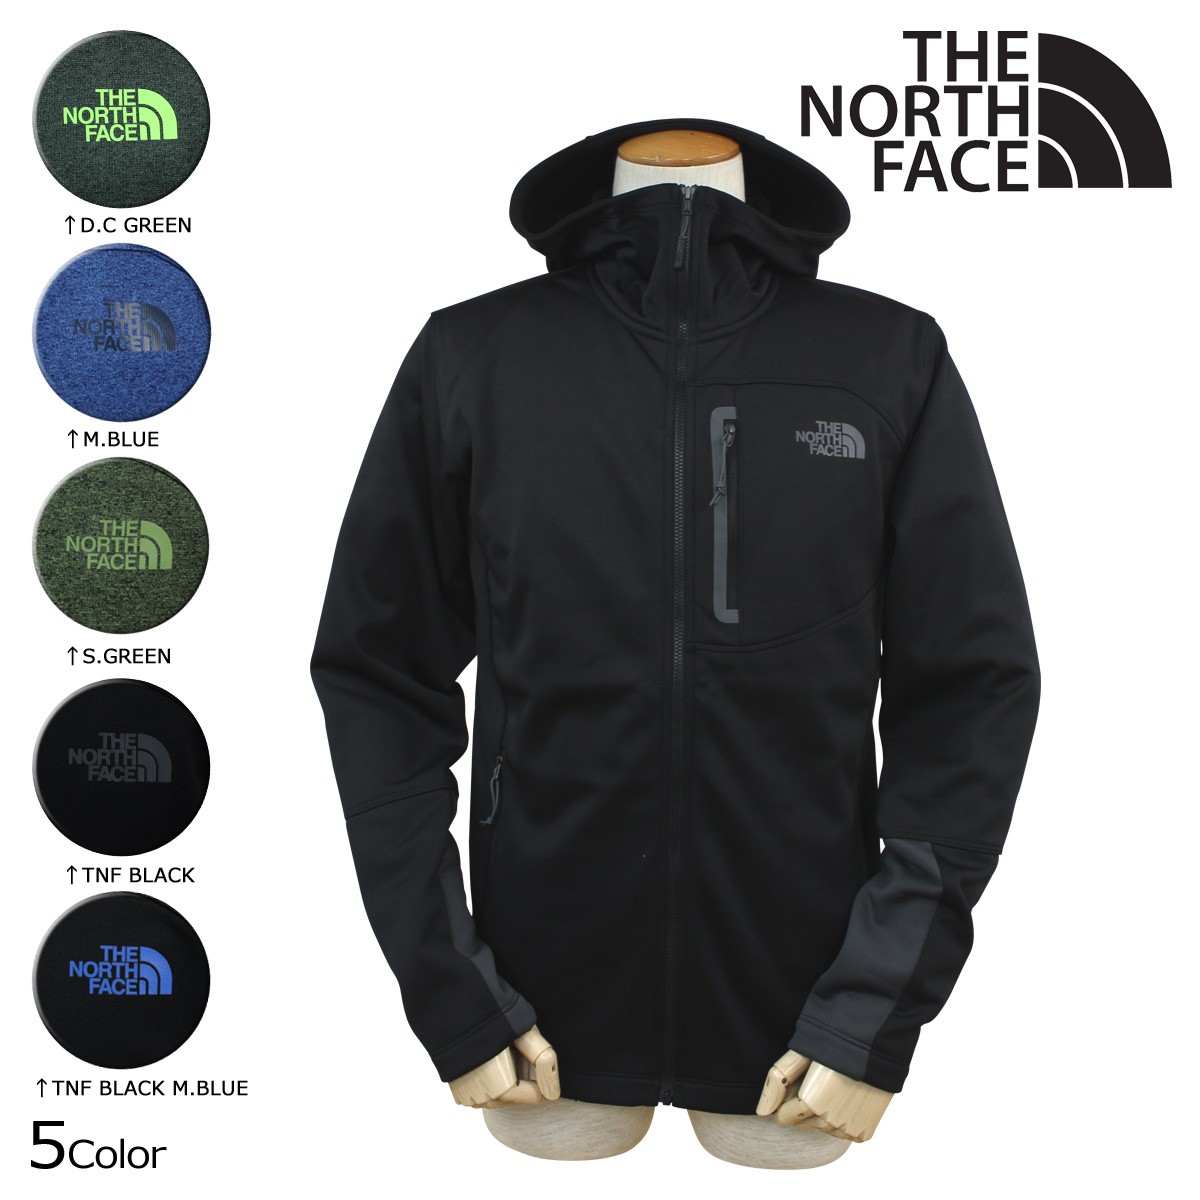 2abde4488 Point 5 x north face THE NORTH FACE mens jacket fleece jacket CUF9 5 color  MEN's CANYONLANDS HOODIE [10/21 new in stock]